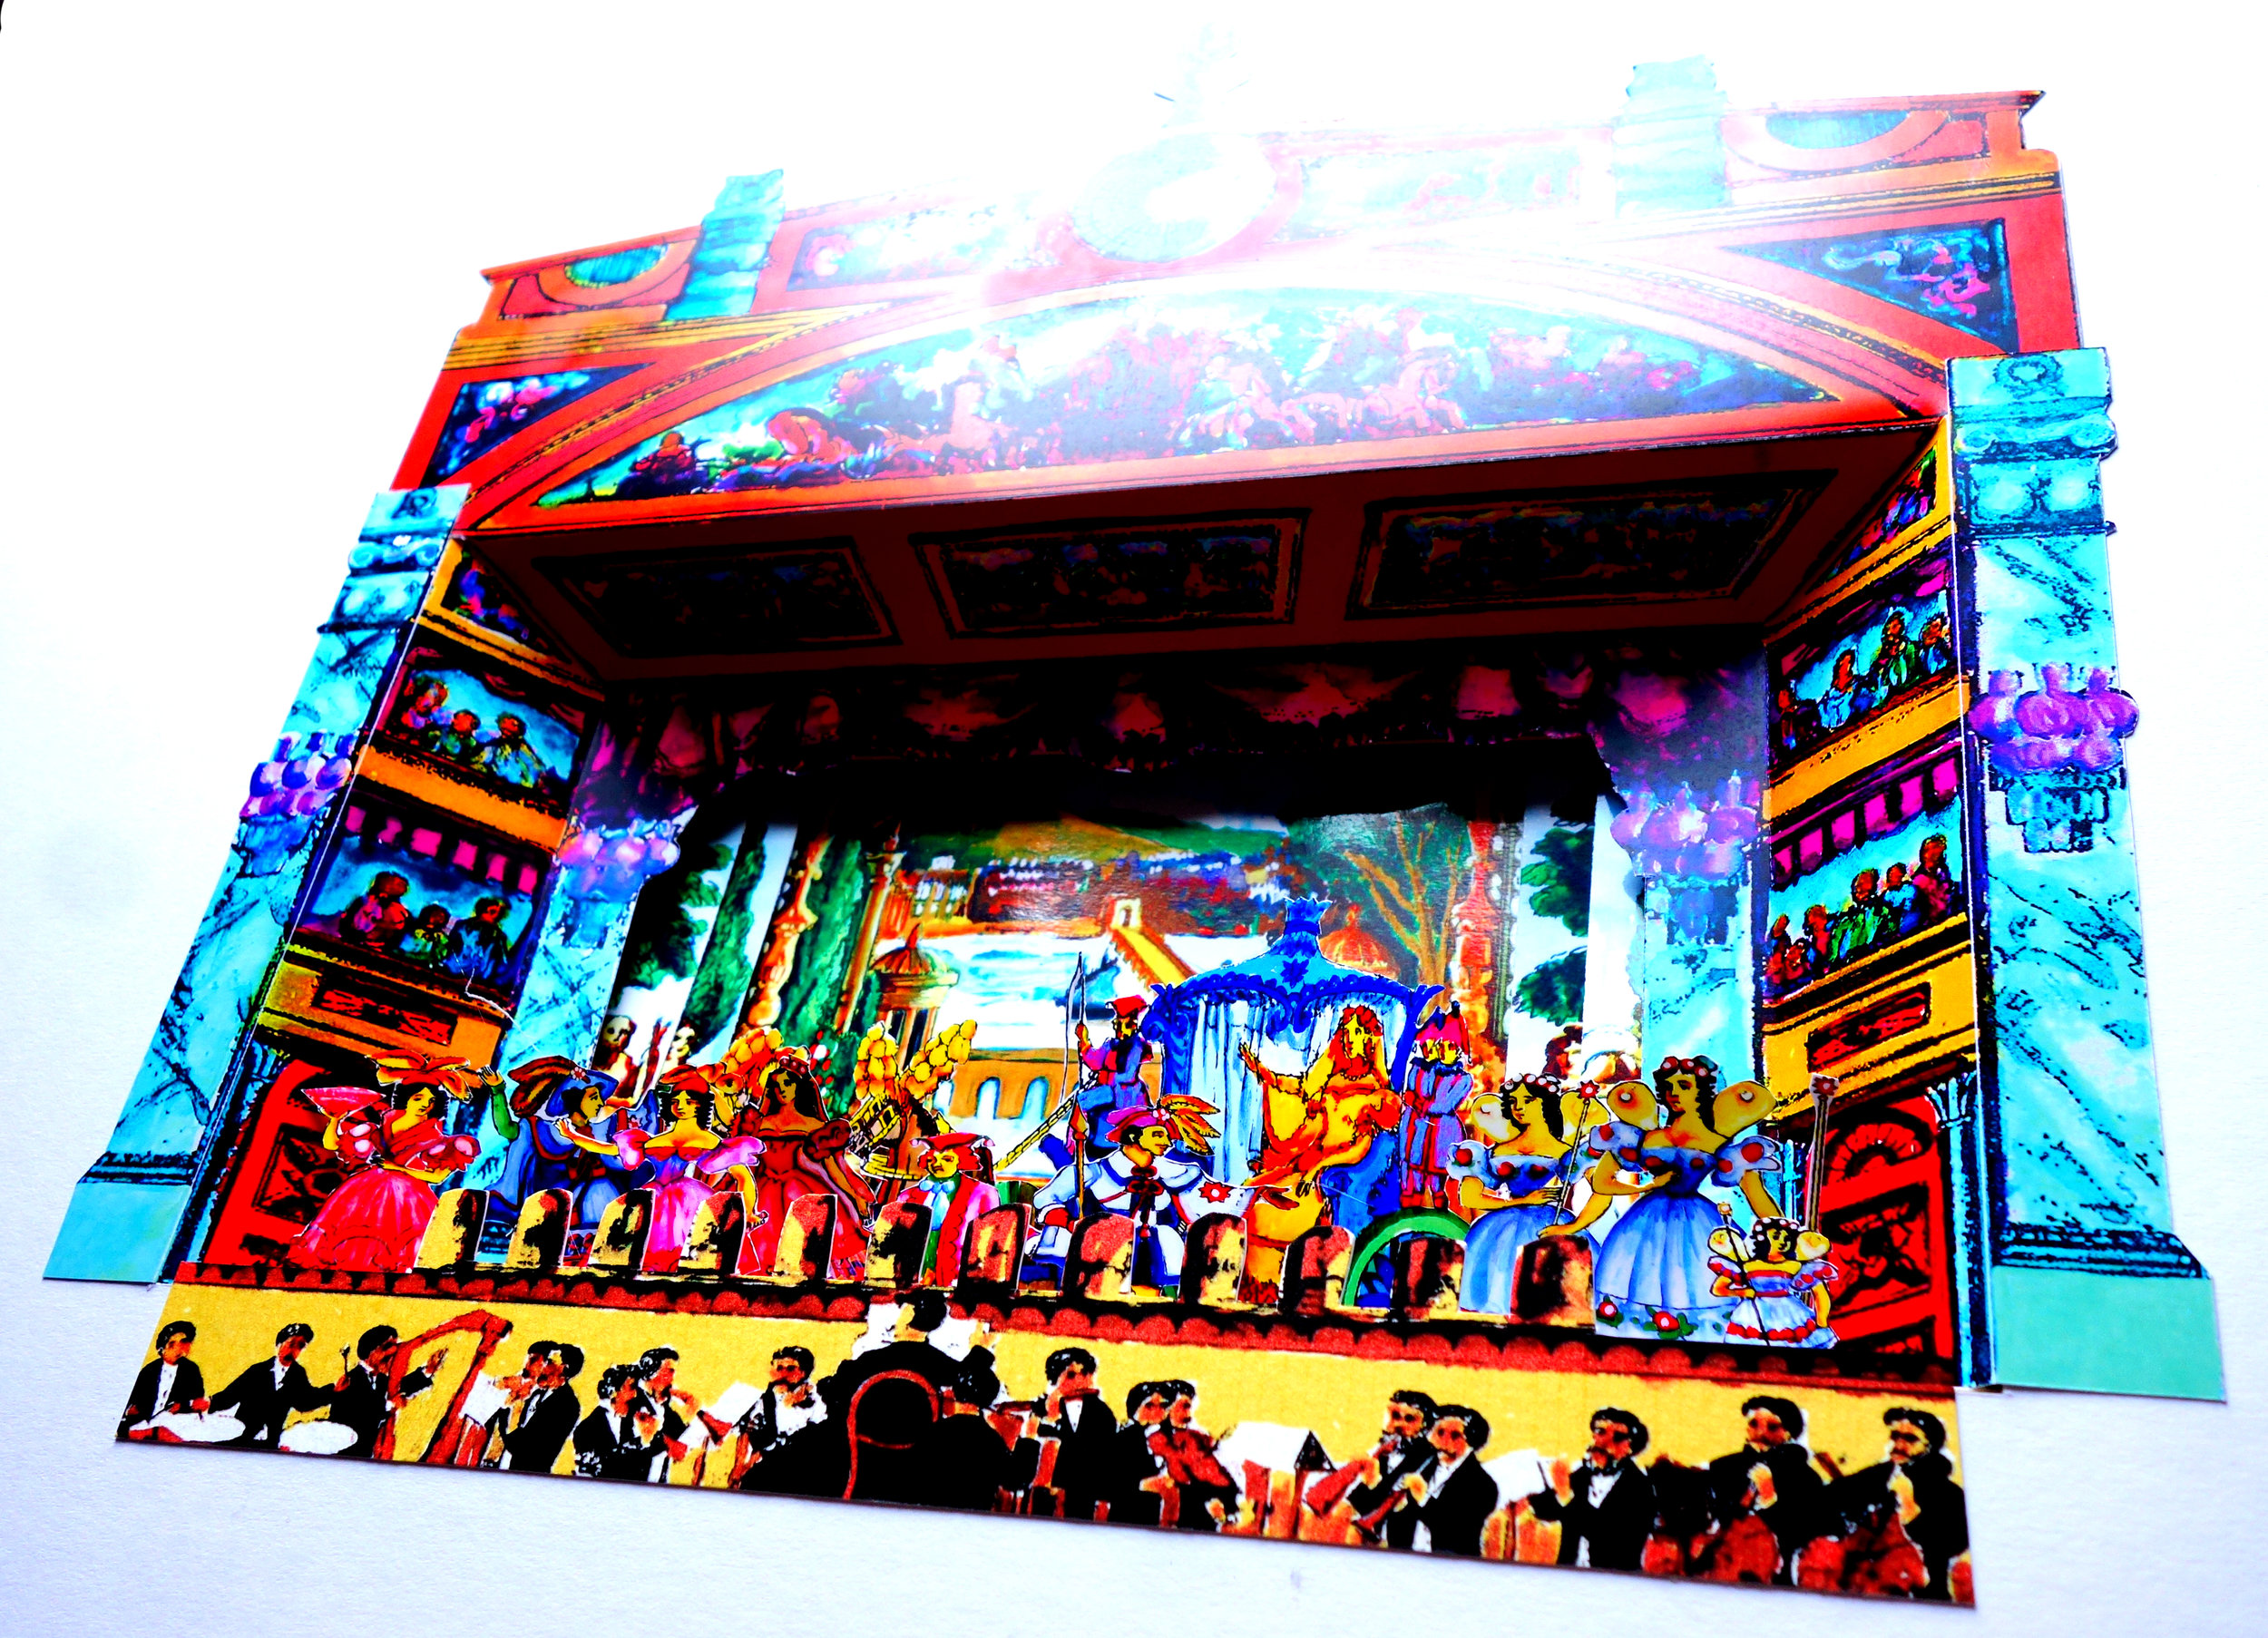 Toy Theatre - Framed Theatre Dioramas. This series is based on the Cinderella pantomime, made famous by Pollock's Toy Theatre.